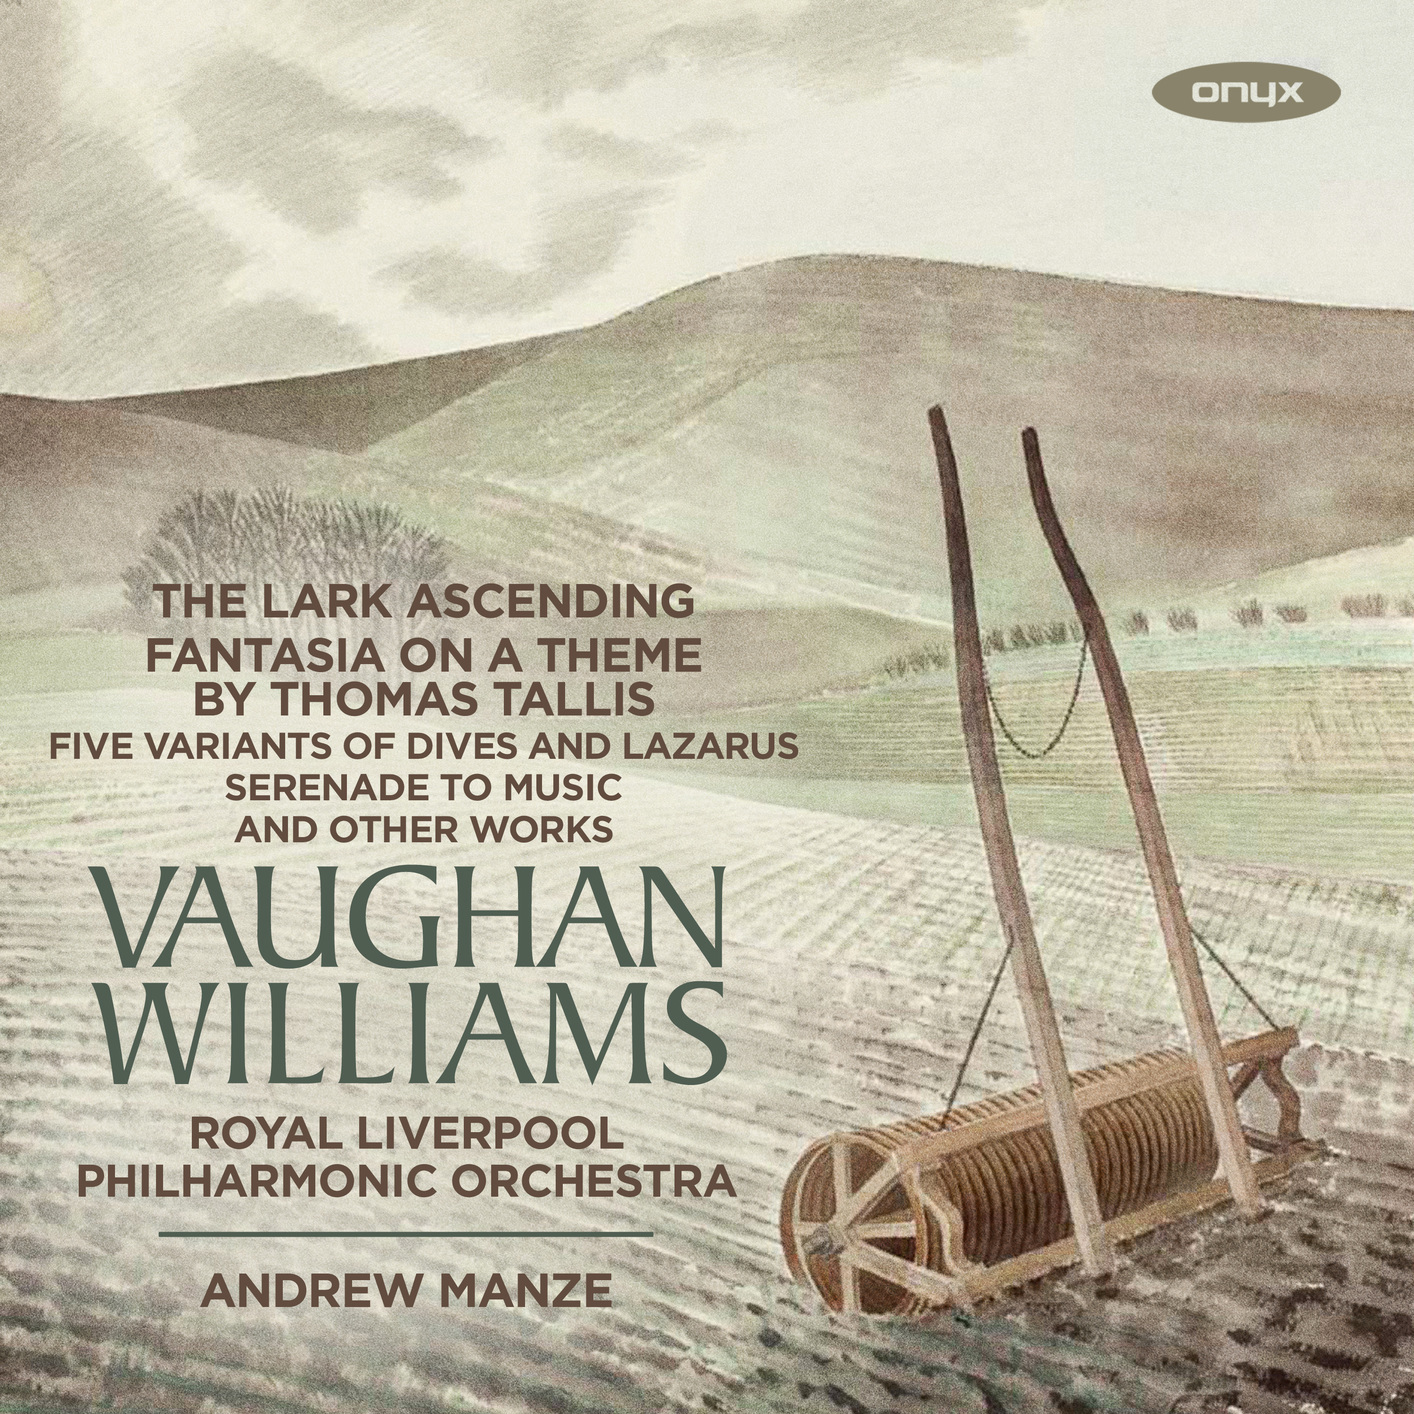 Vaughan Williams The Lark Ascending Fantasia On A Theme By Thomas Tallis And Other Works Highresaudio